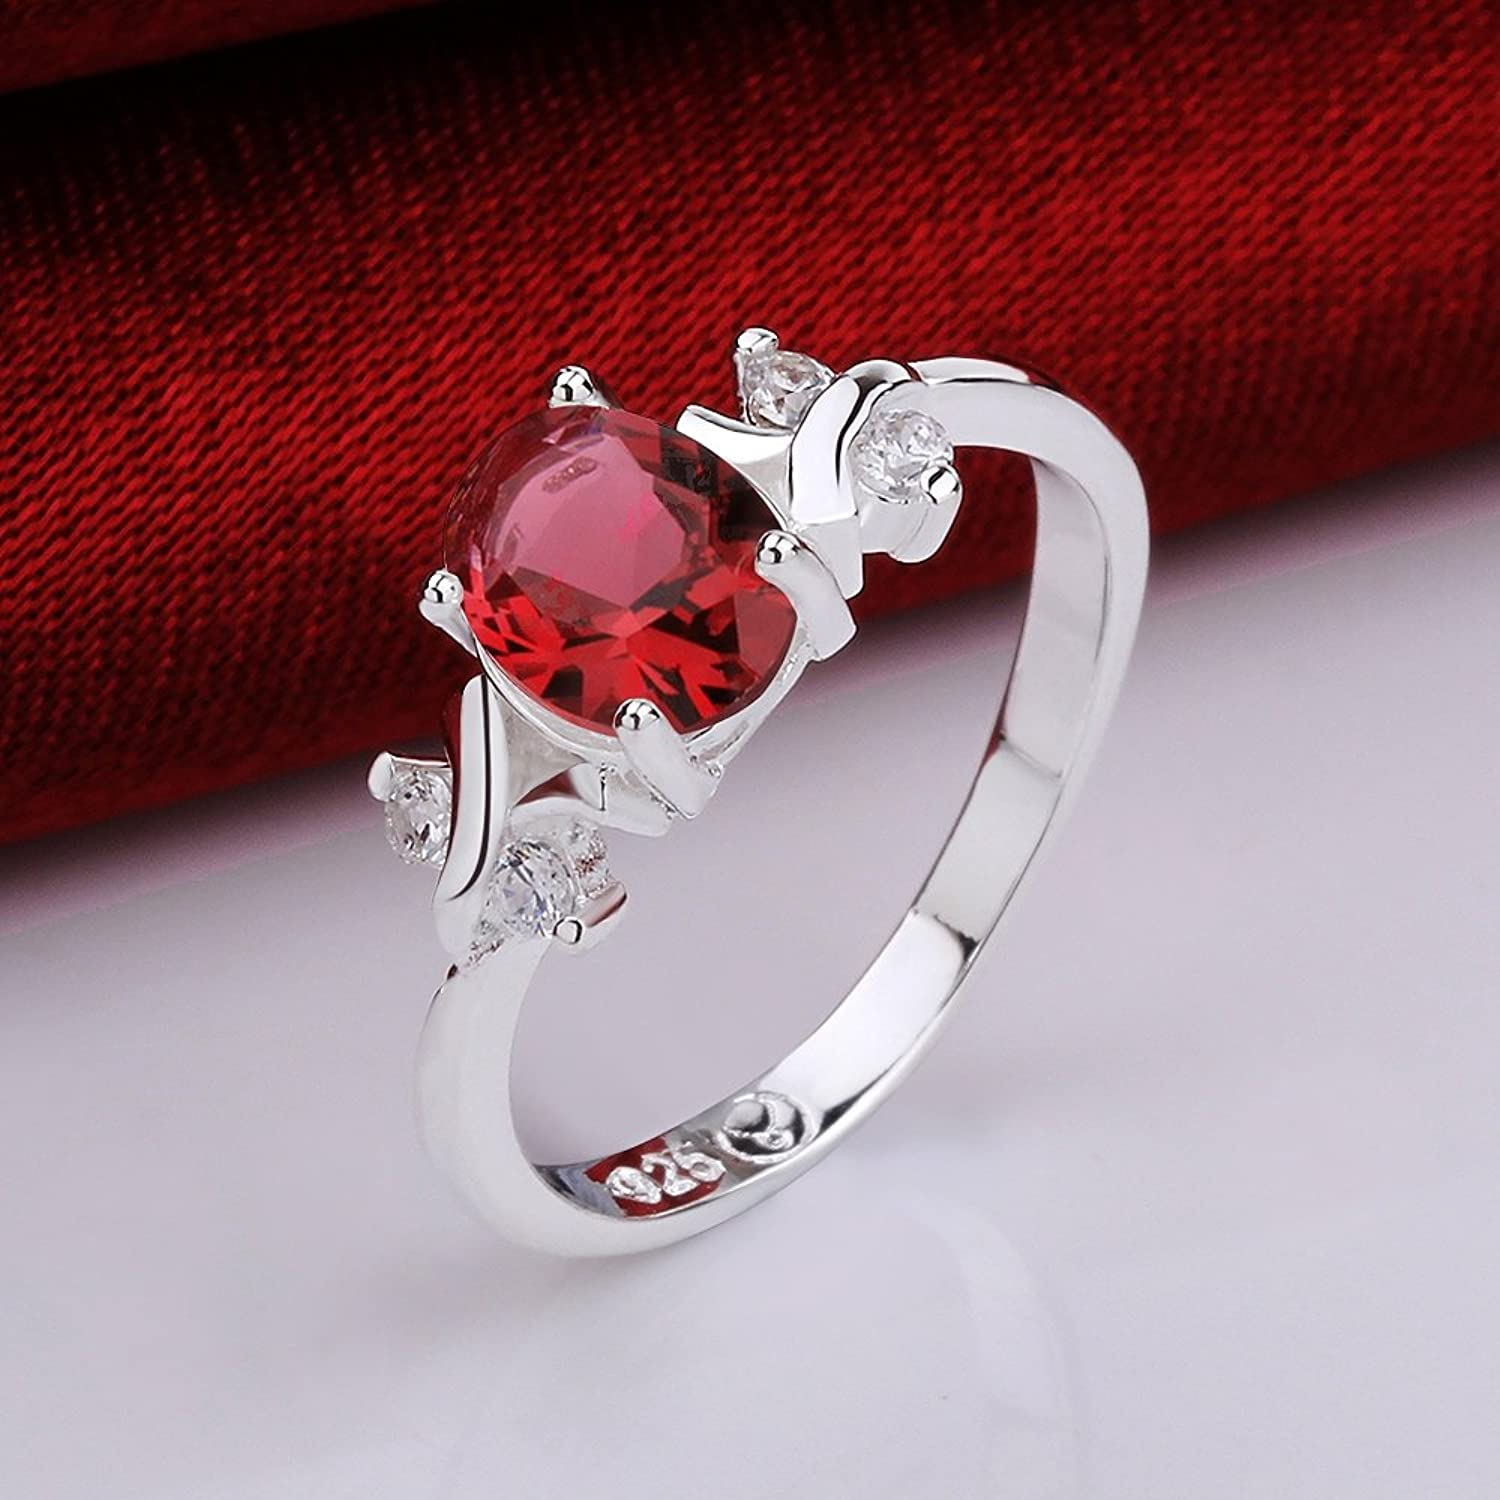 fashion red grade design rings brand men item ruby for aaa jewelry inlaid unique austria in opk zircon royal top square accessory blood from